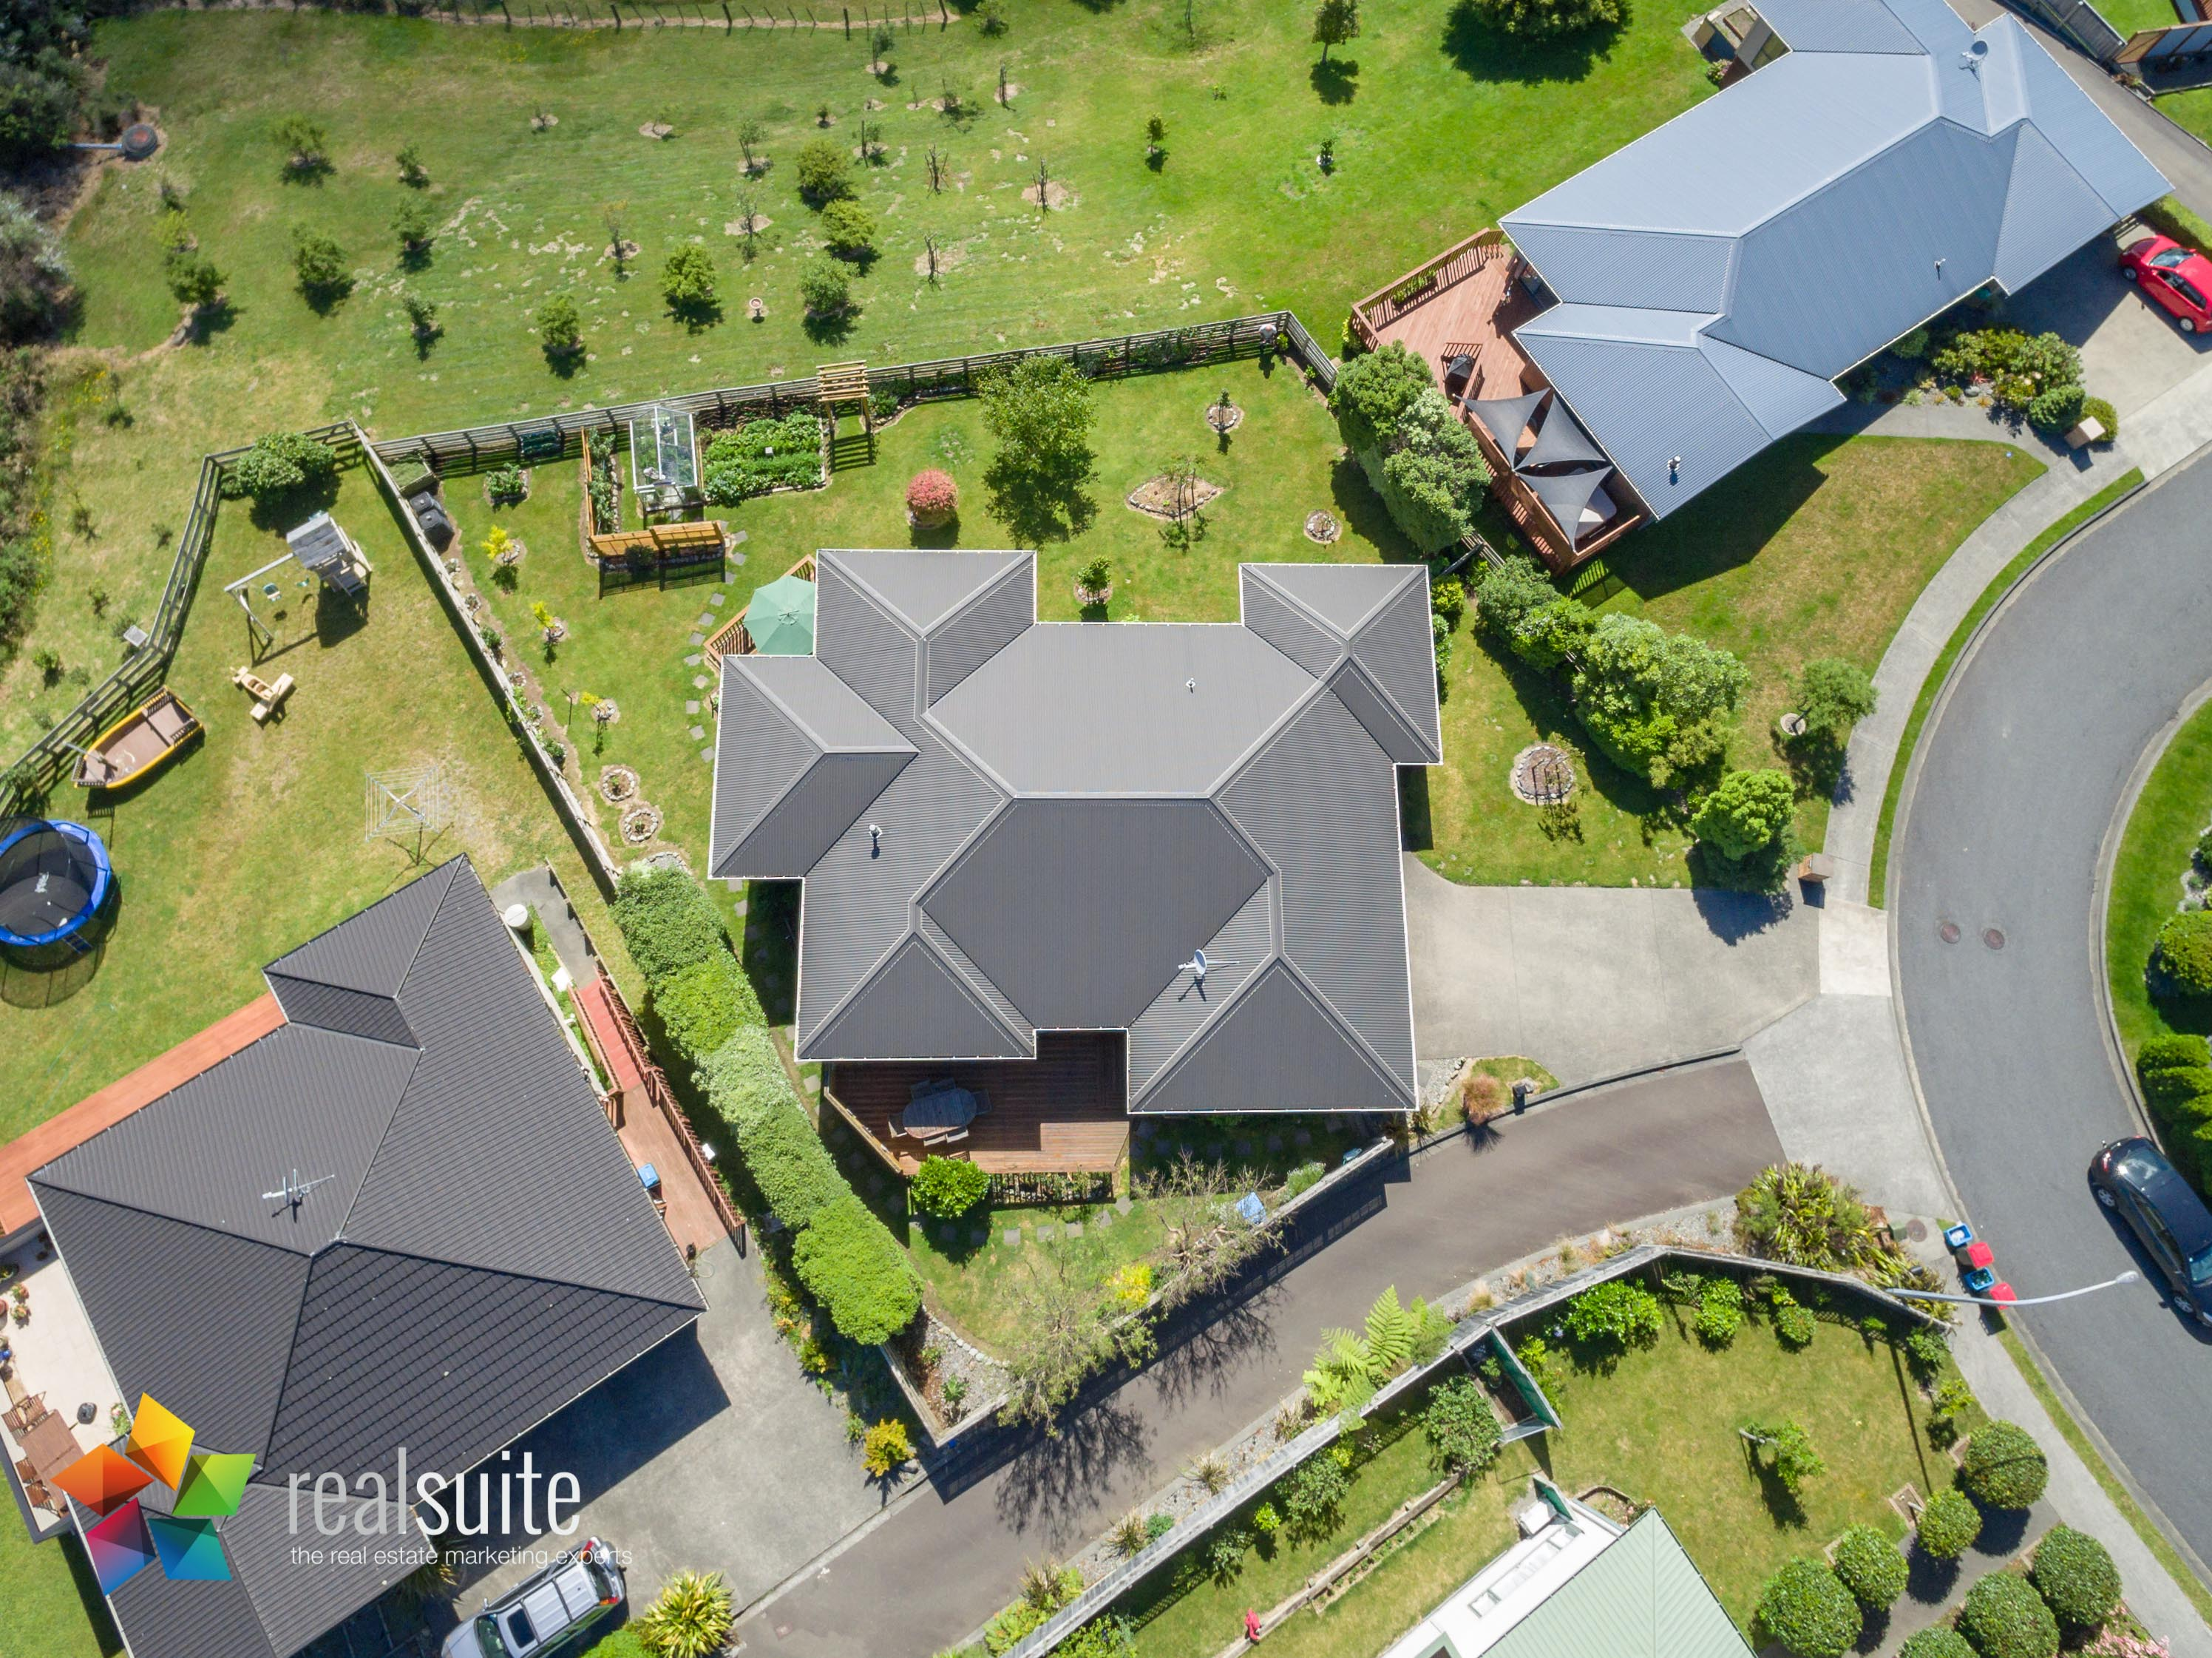 9 McEwen Crescent, Riverstone Terraces Aerial 0464